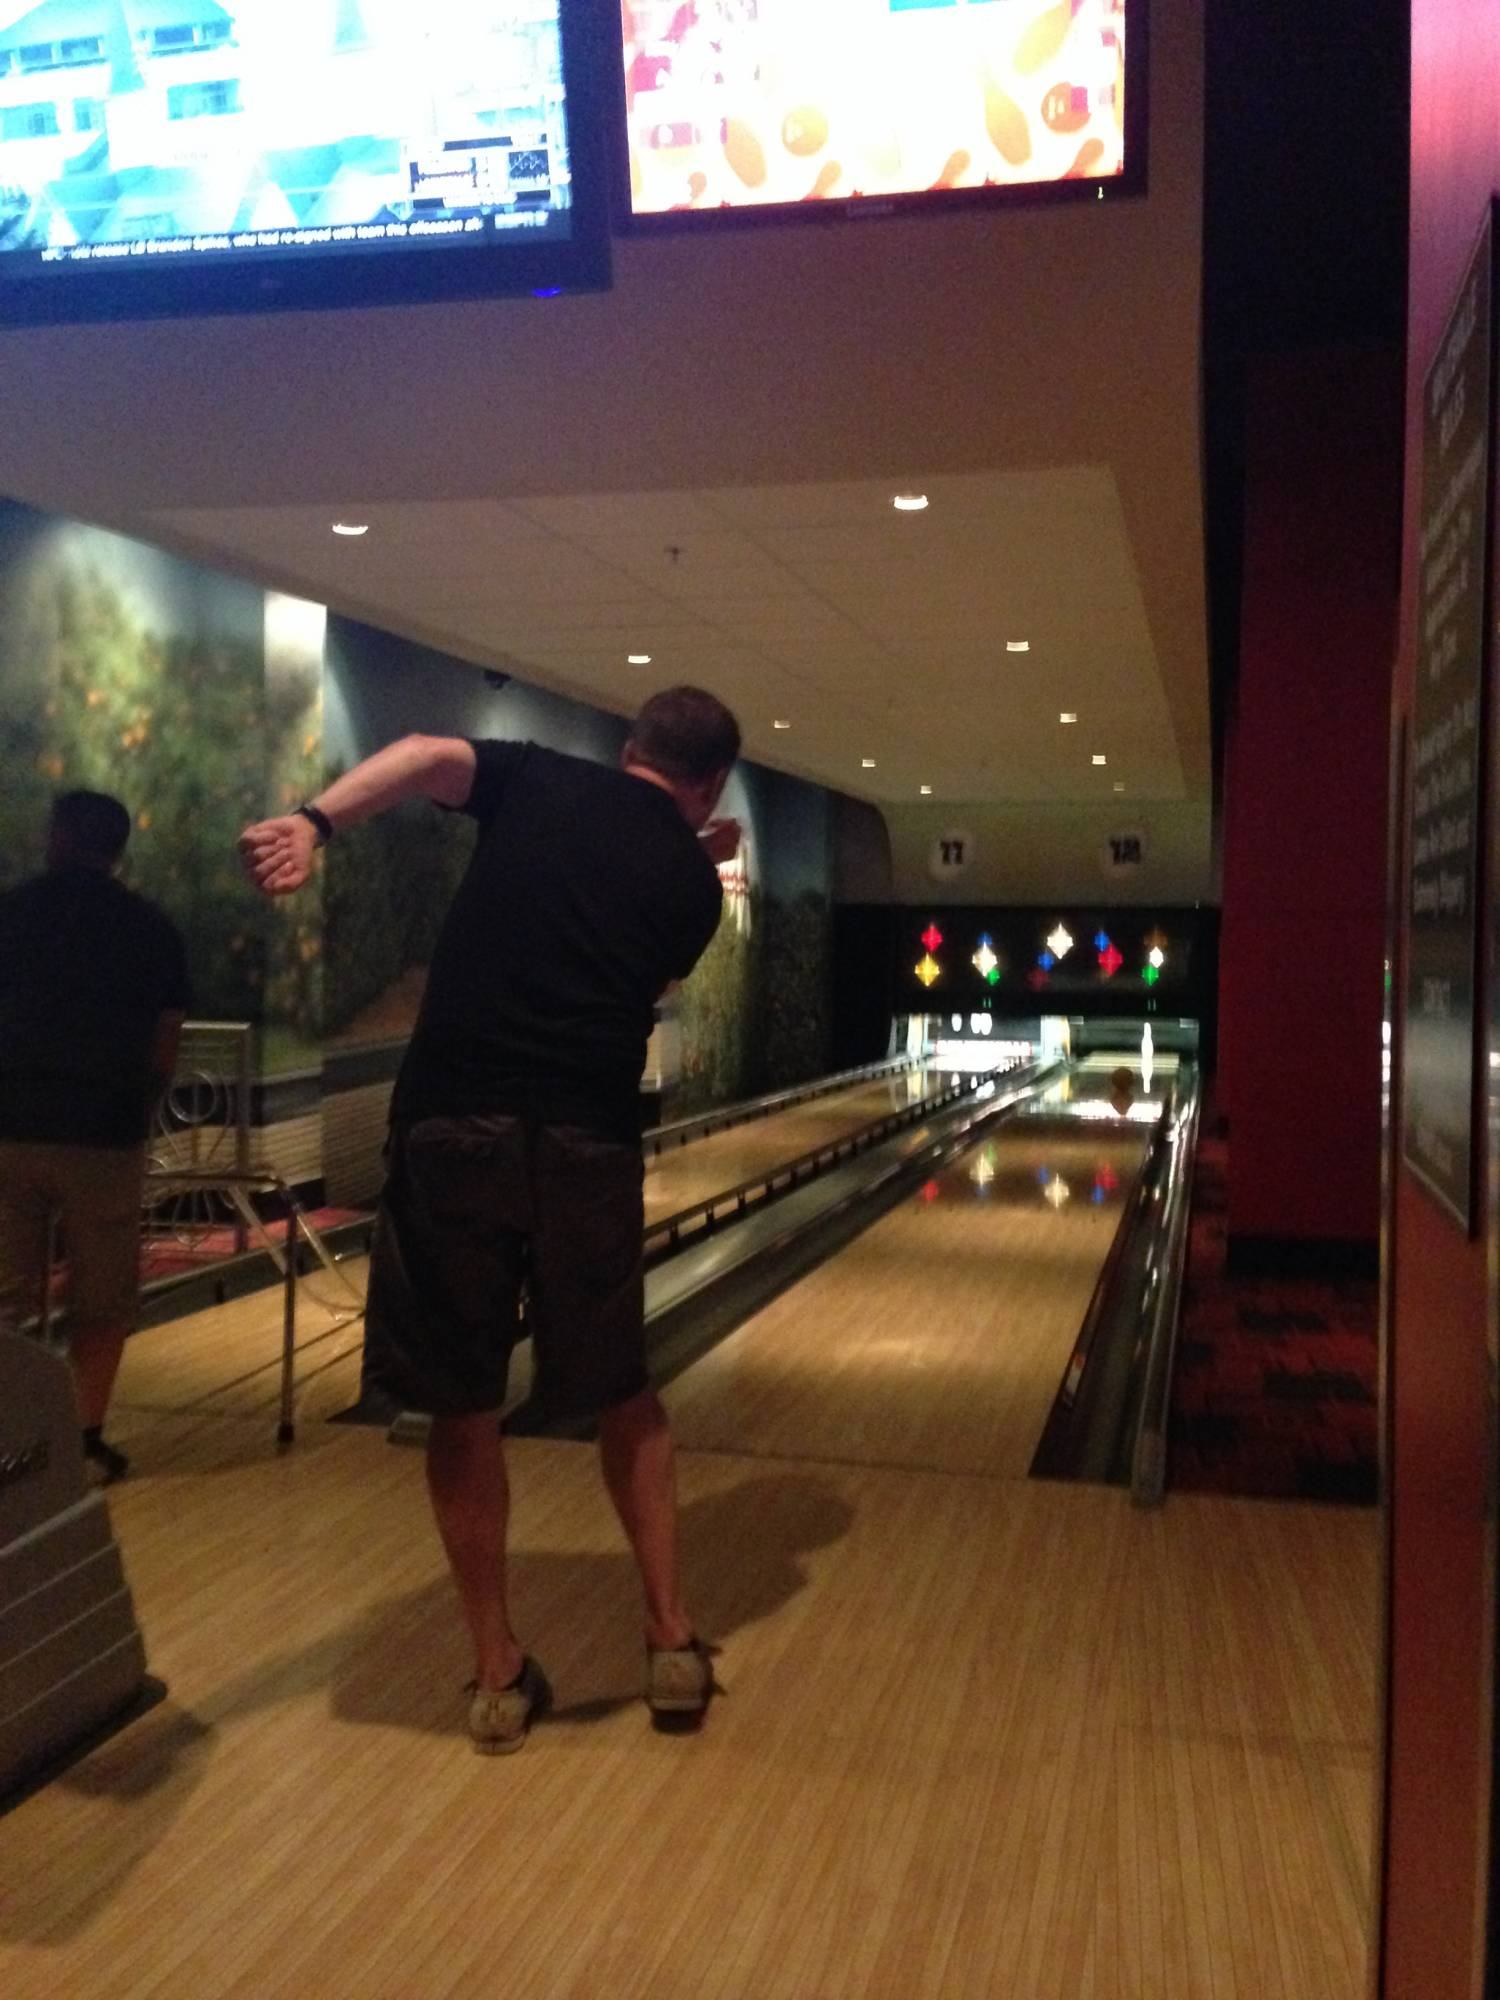 Enjoy dining and bowling (or dining while bowling) at Splitsville in Disney Springs |PassPorter.com